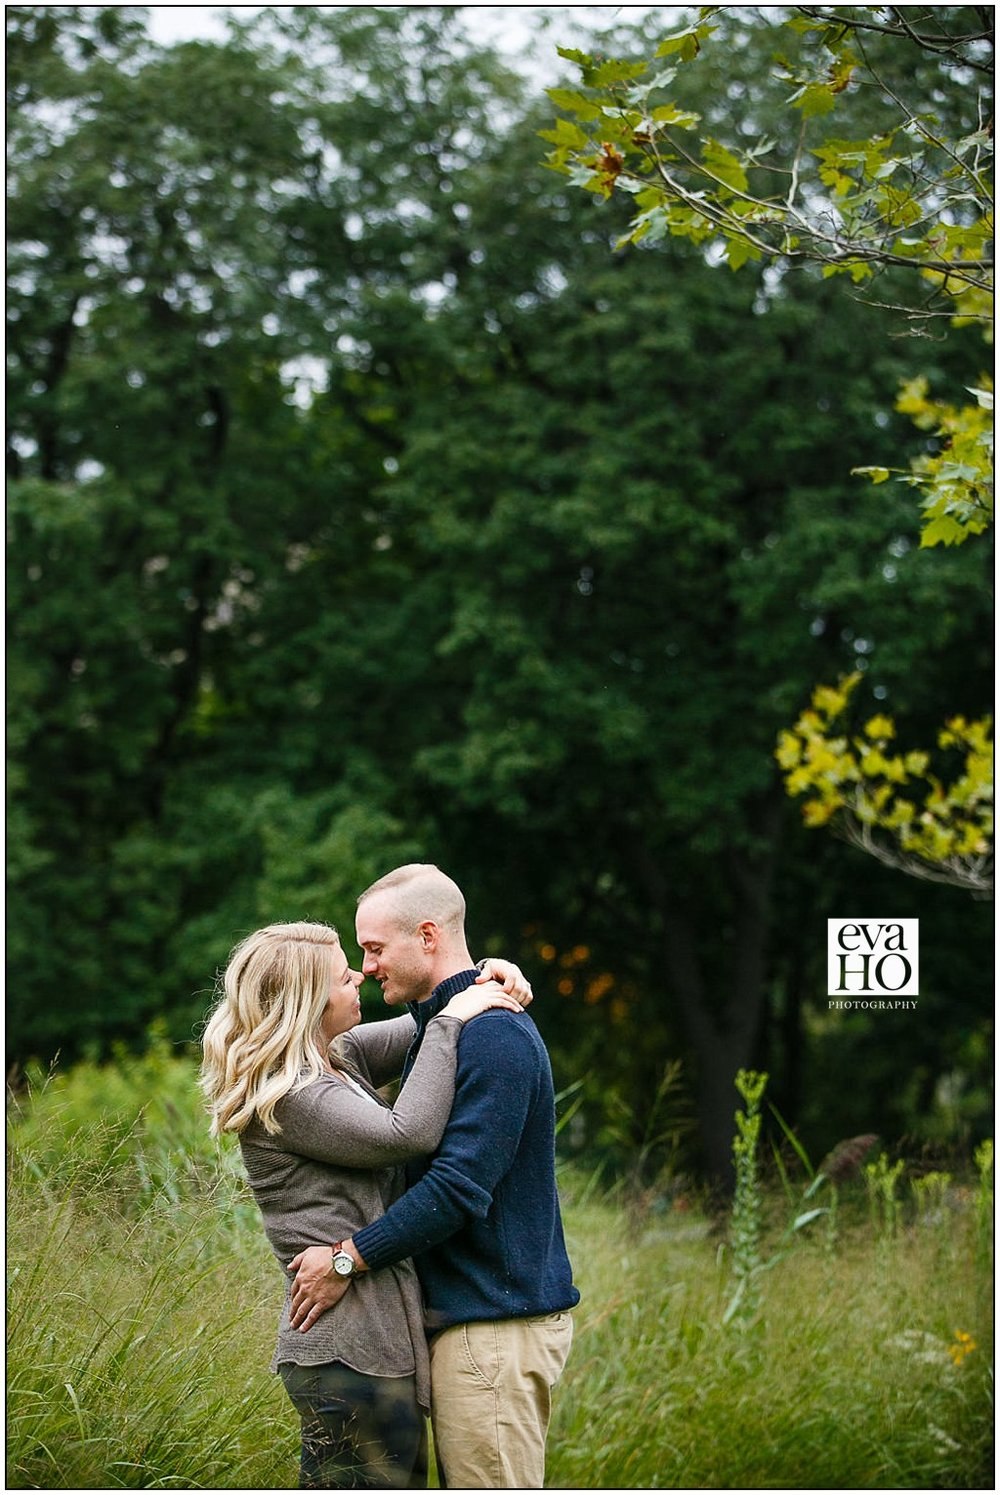 Colleen and Kevin stealing a kiss in the middle of their engagement session in Lincoln Park